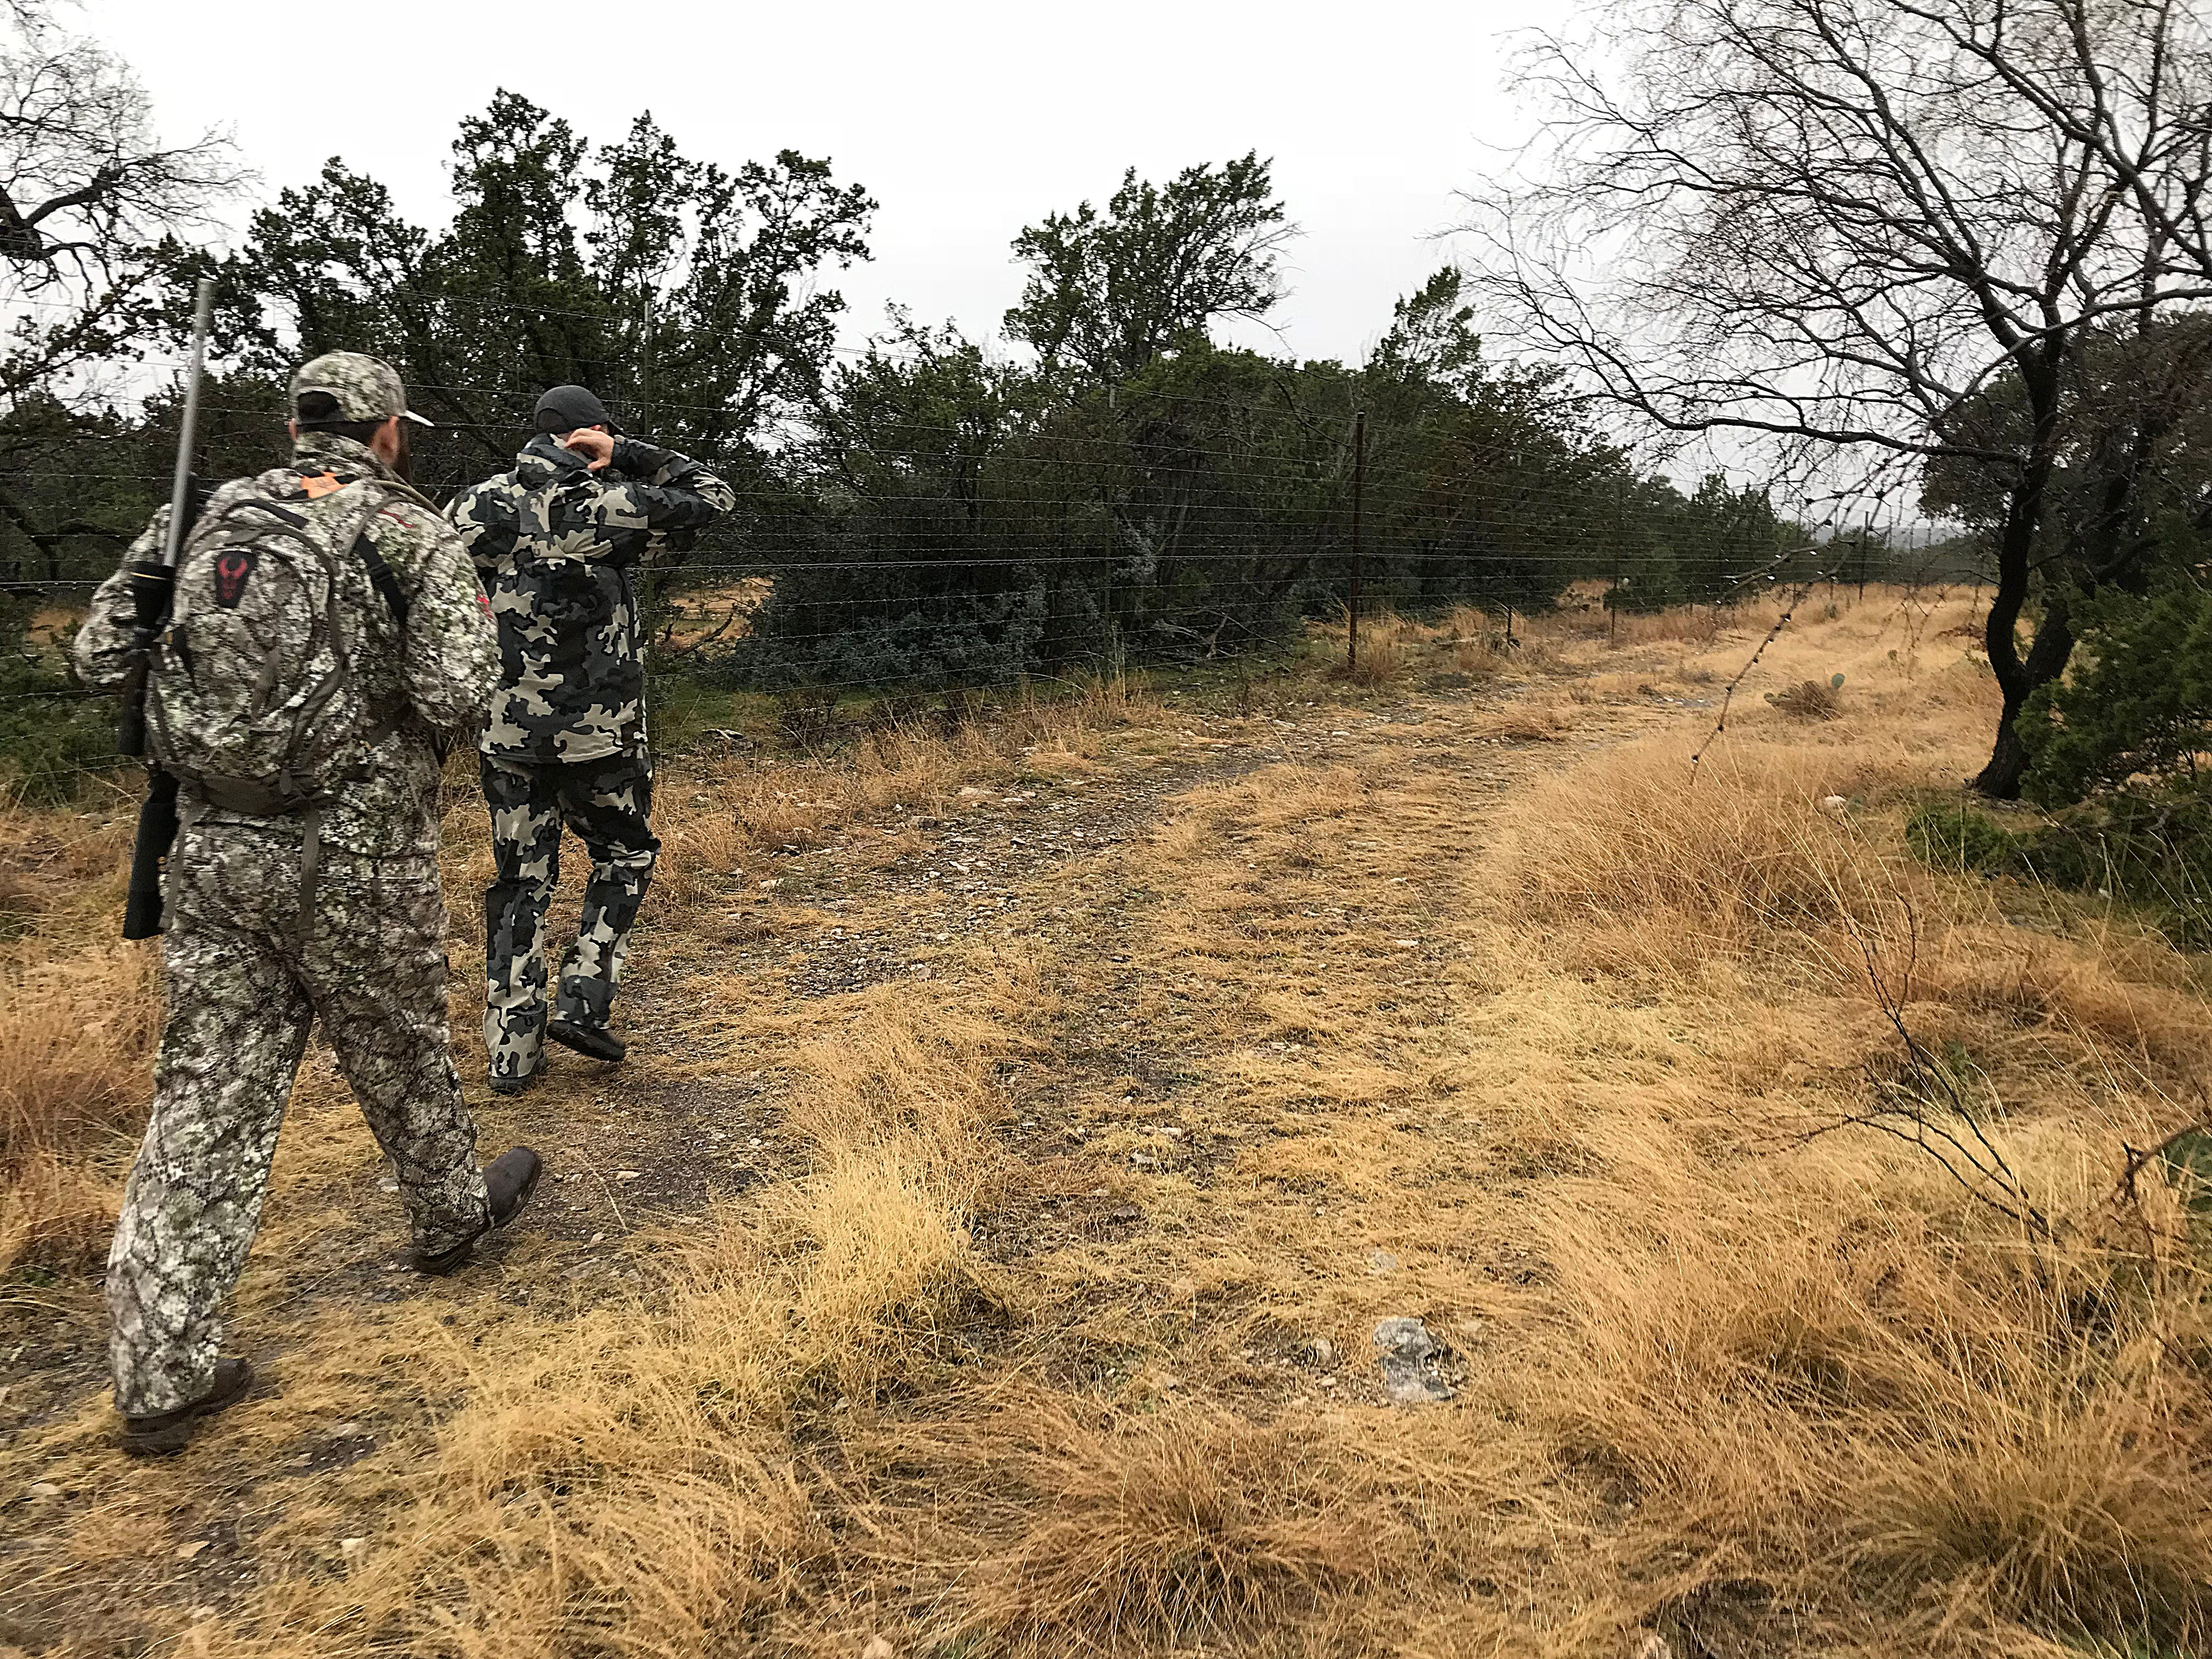 Joseph Lewis (left) and his guide Ryan Dupriest make their way to a deer blind during the annual deer hunt in Christoval Friday, Dec. 7, 2018 sponsored by San Angelo Support for Veterans and Lone Star Warriors Outdoors.